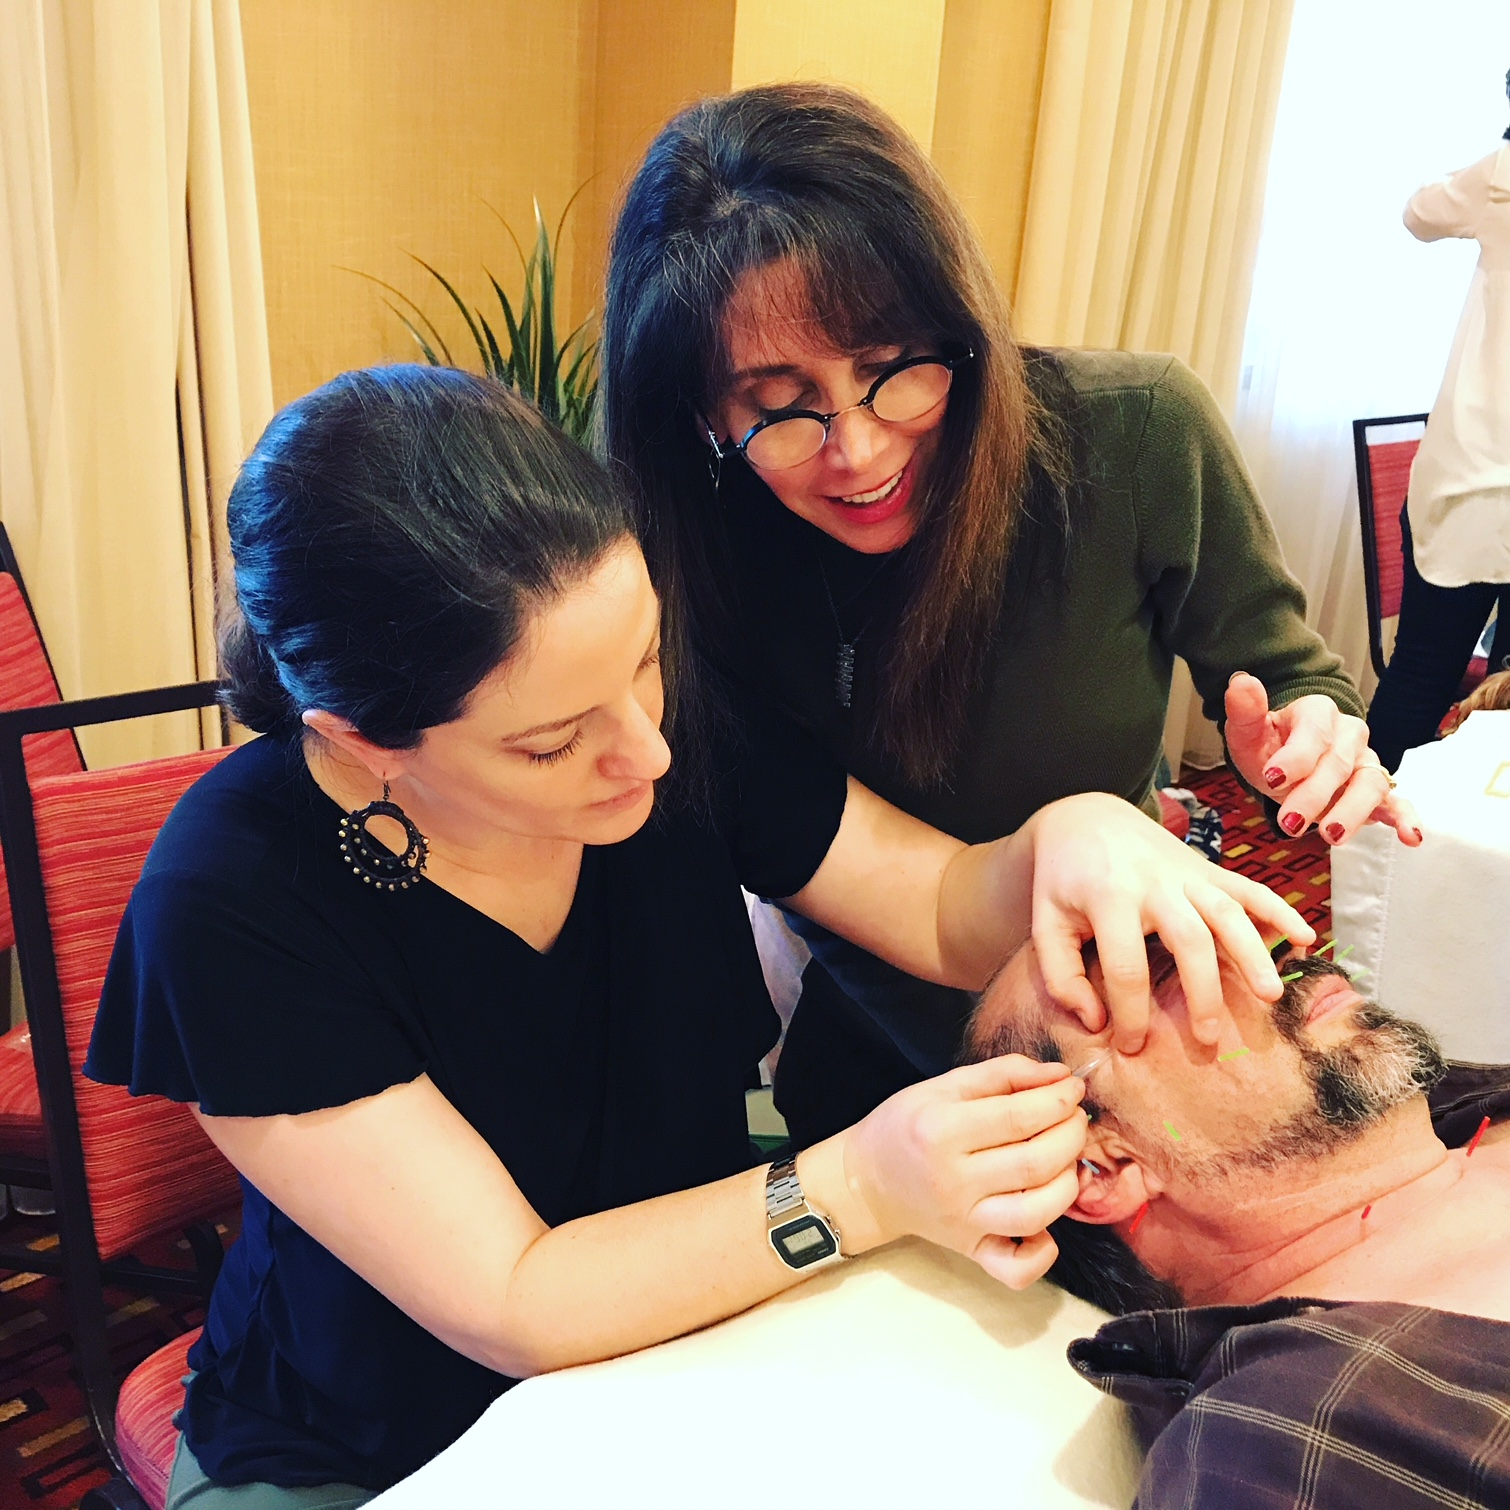 Michelle Gellis facial acupuncture classes